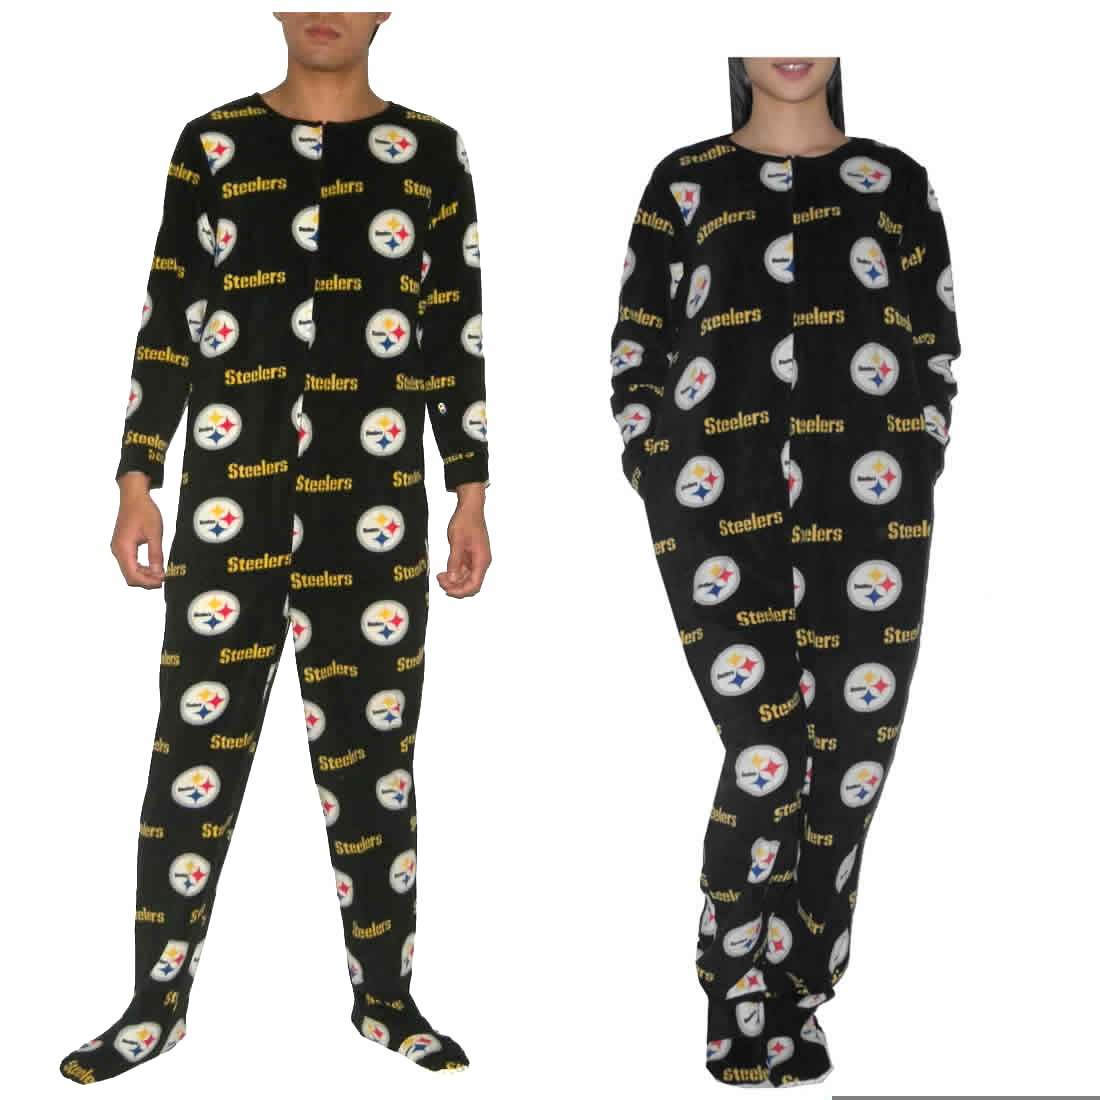 NFL Pittsburgh Steelers Adult Fall   Winter Polar Fleece One-Piece Footed  Pajamas   Romper Jumpsuit (Size  L)  Amazon.co.uk  Clothing 37506b7f9